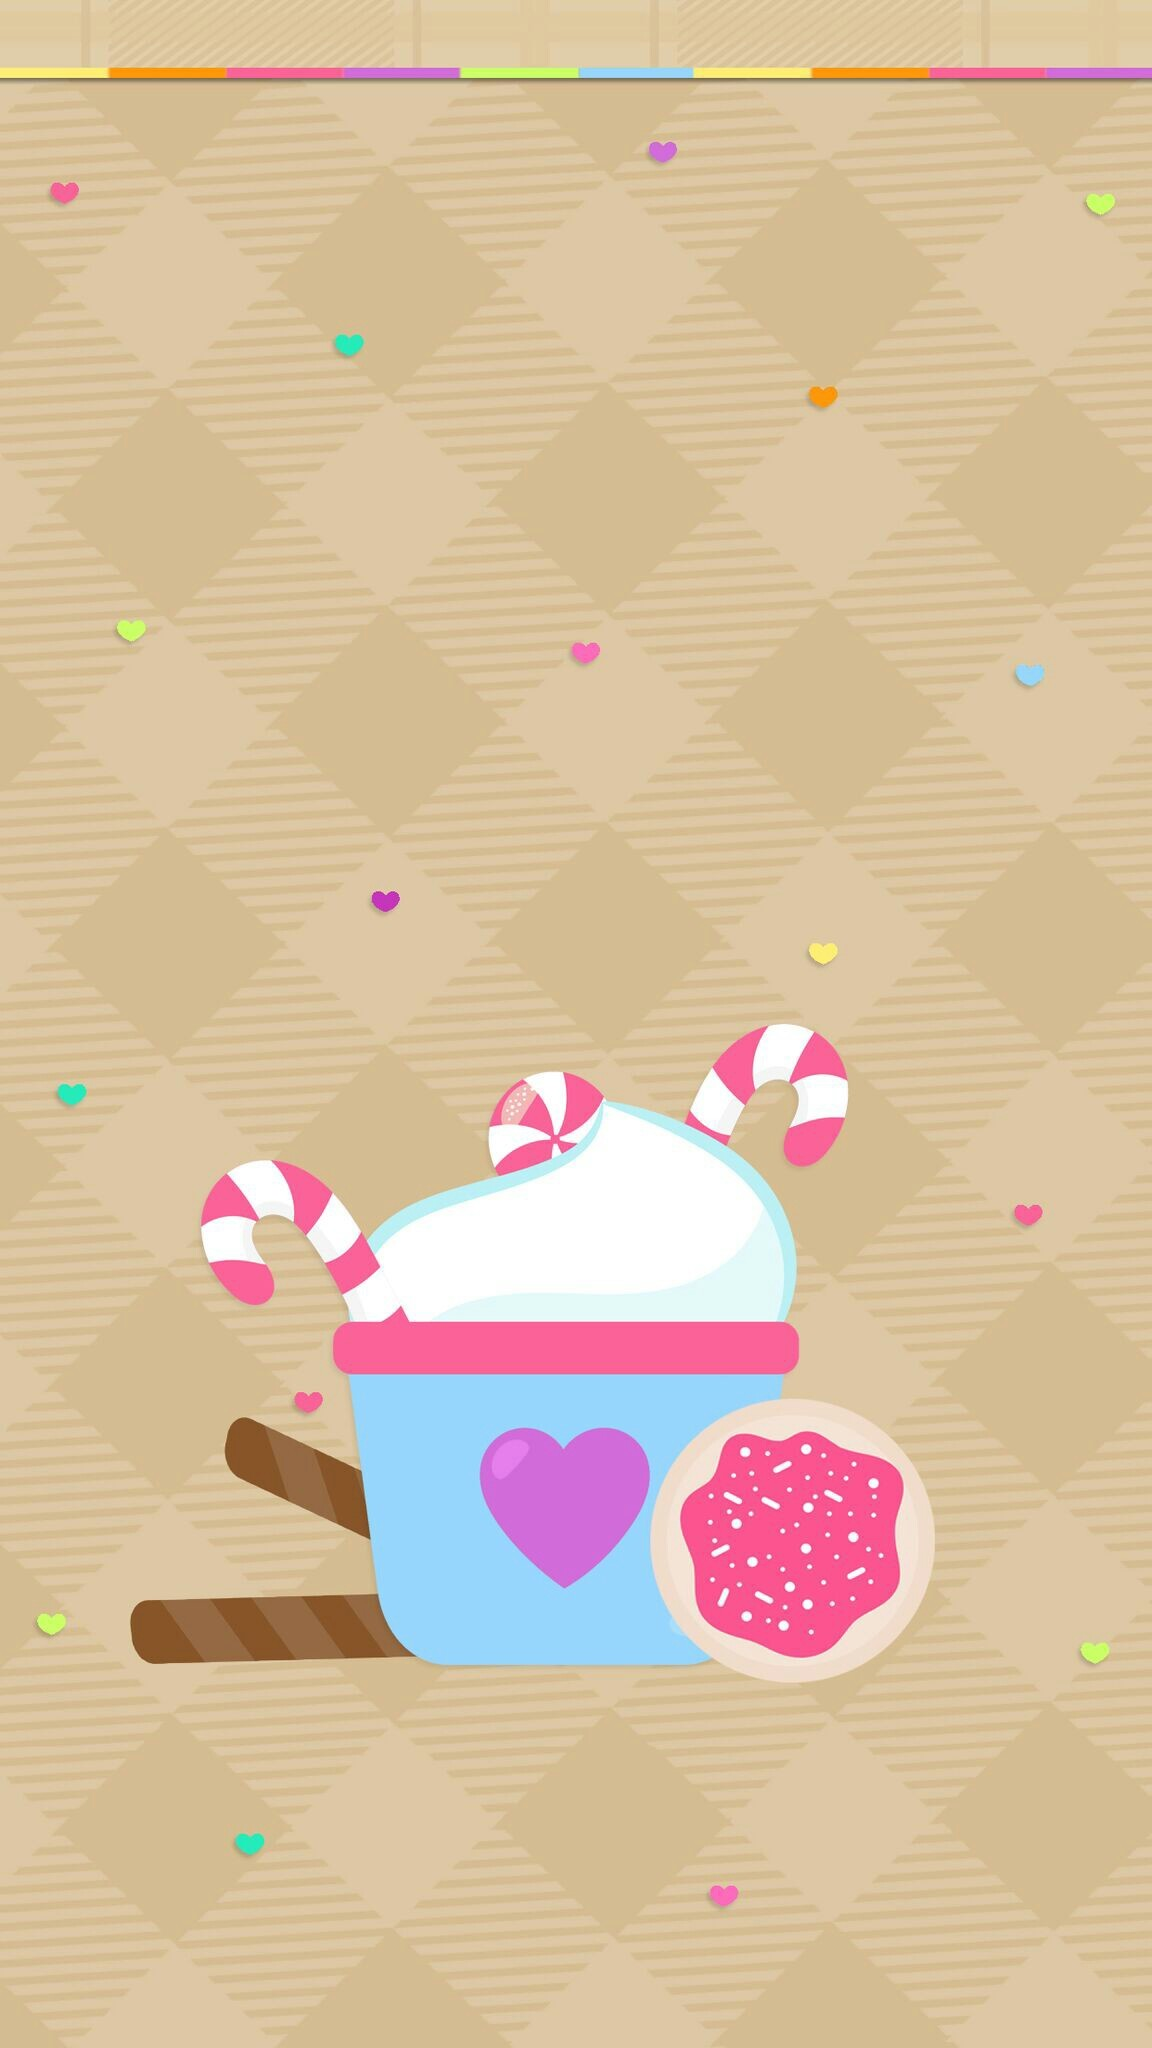 Cute Wallpapers For Phone Backgrounds 71 Images